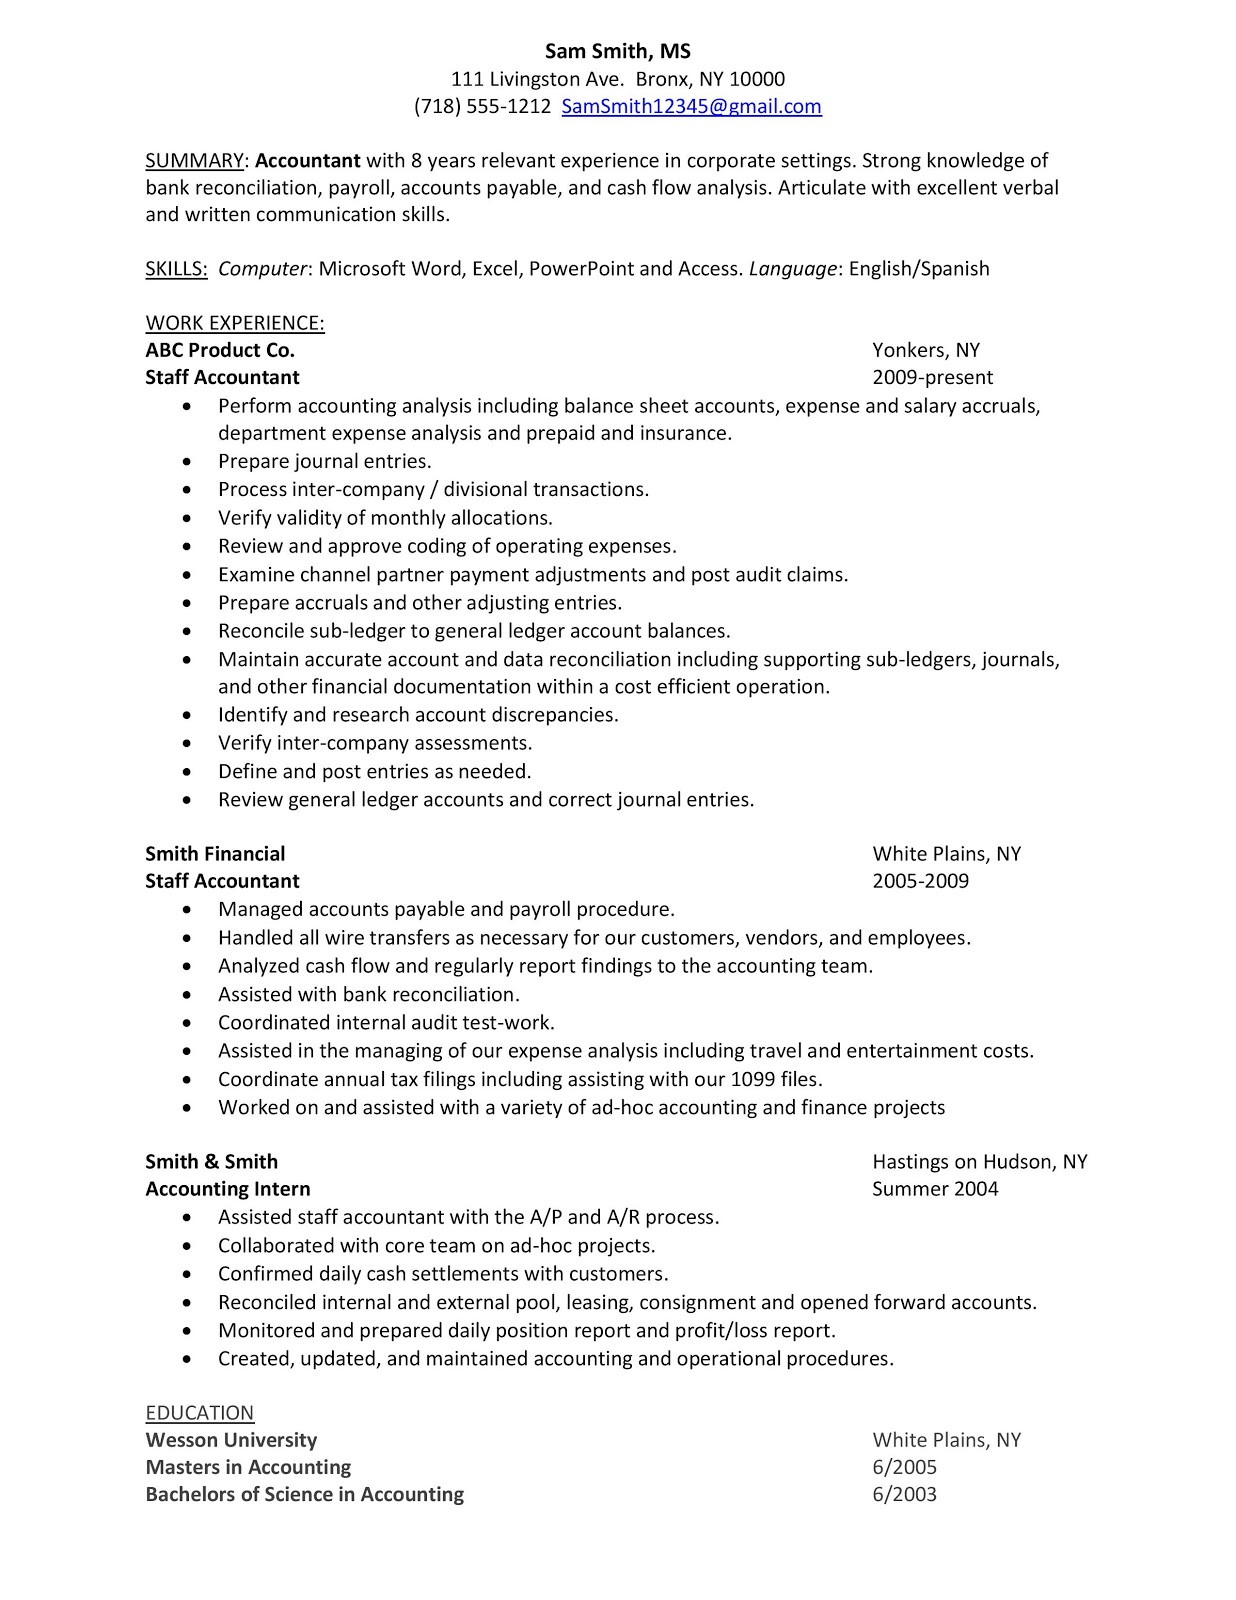 books on writing a resume create professional resumes online for books on writing a resume best resume writing services best 10 resume writers check out my